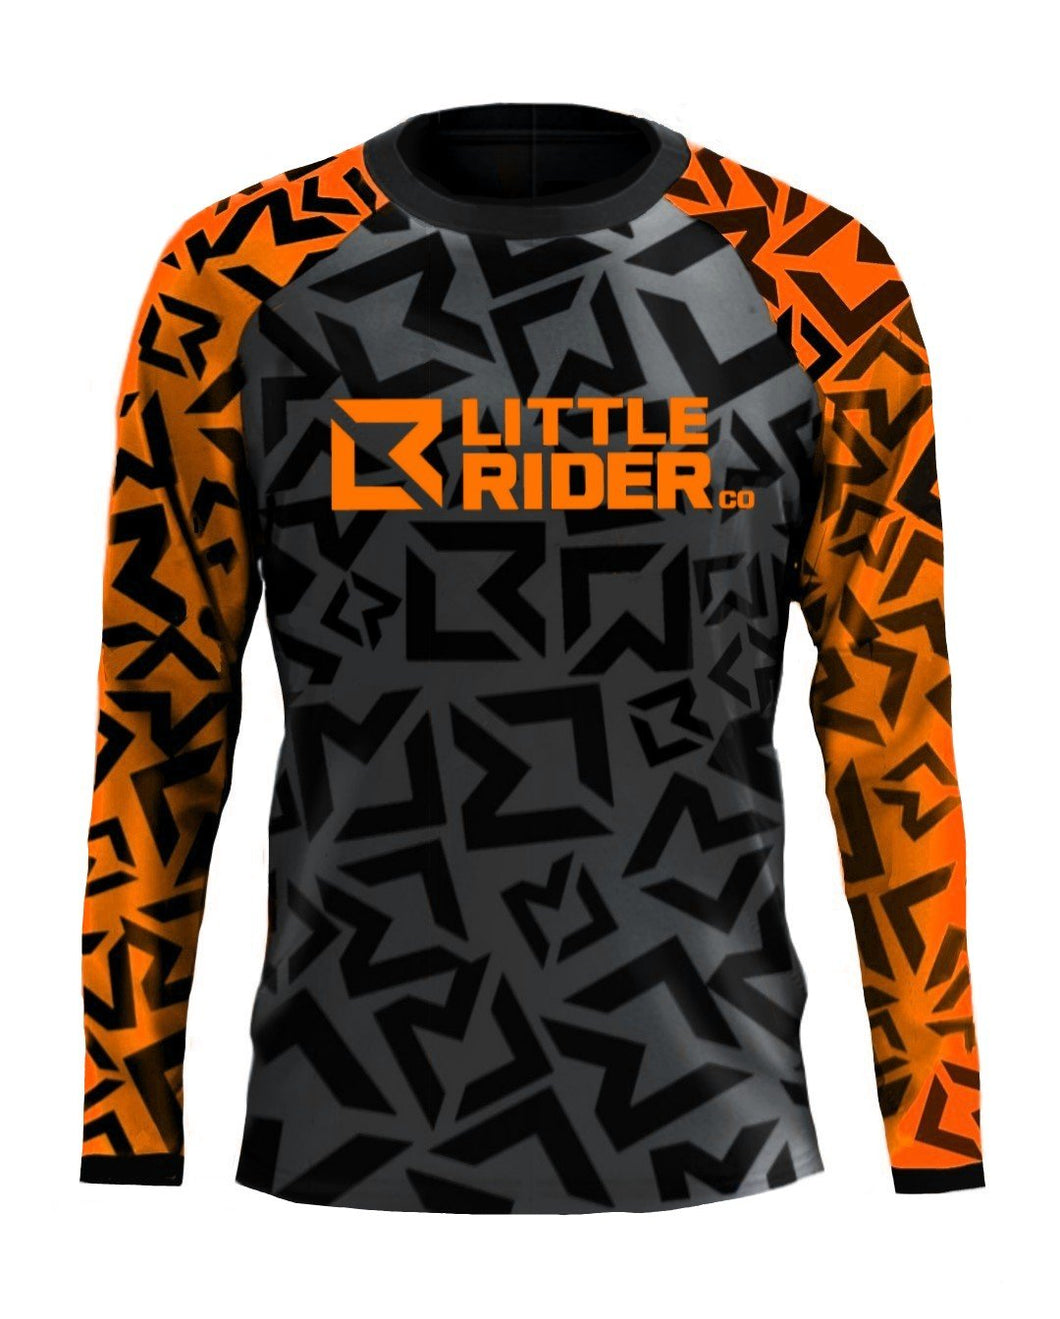 Little Rider Co 'Classic' Jersey - Orange